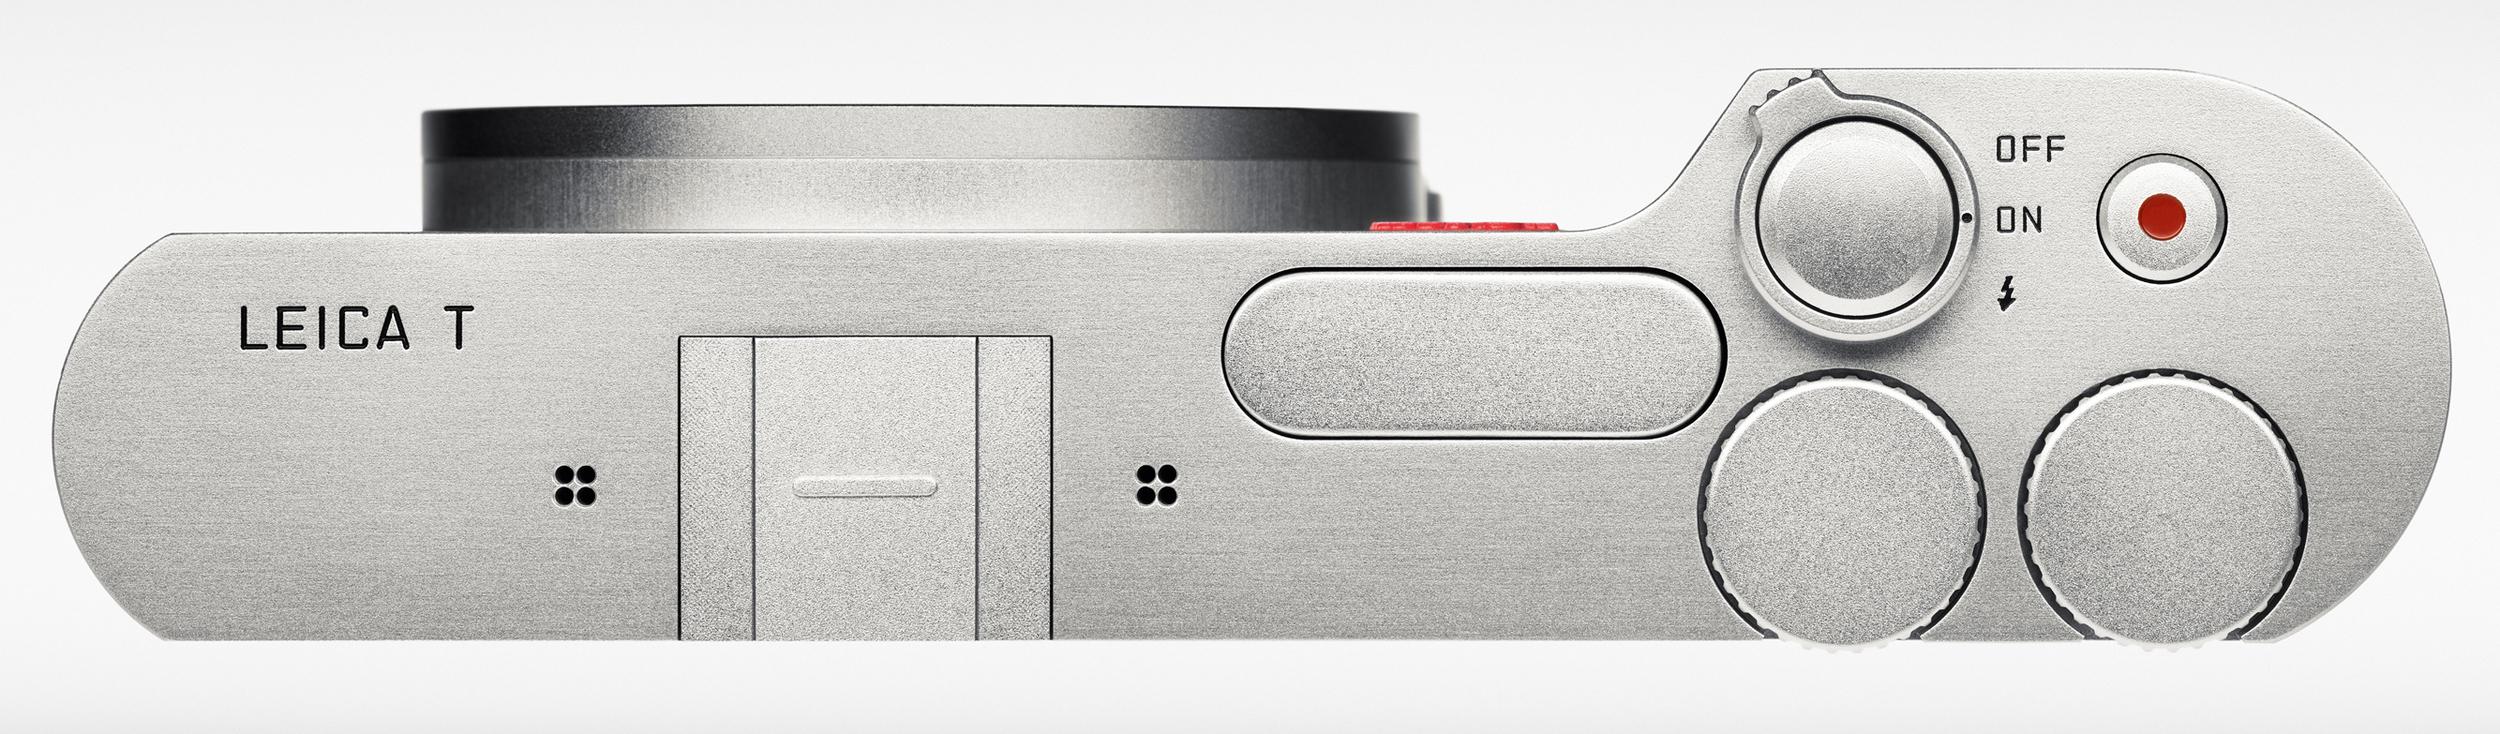 Leica T_silver_top_without_lens.jpg